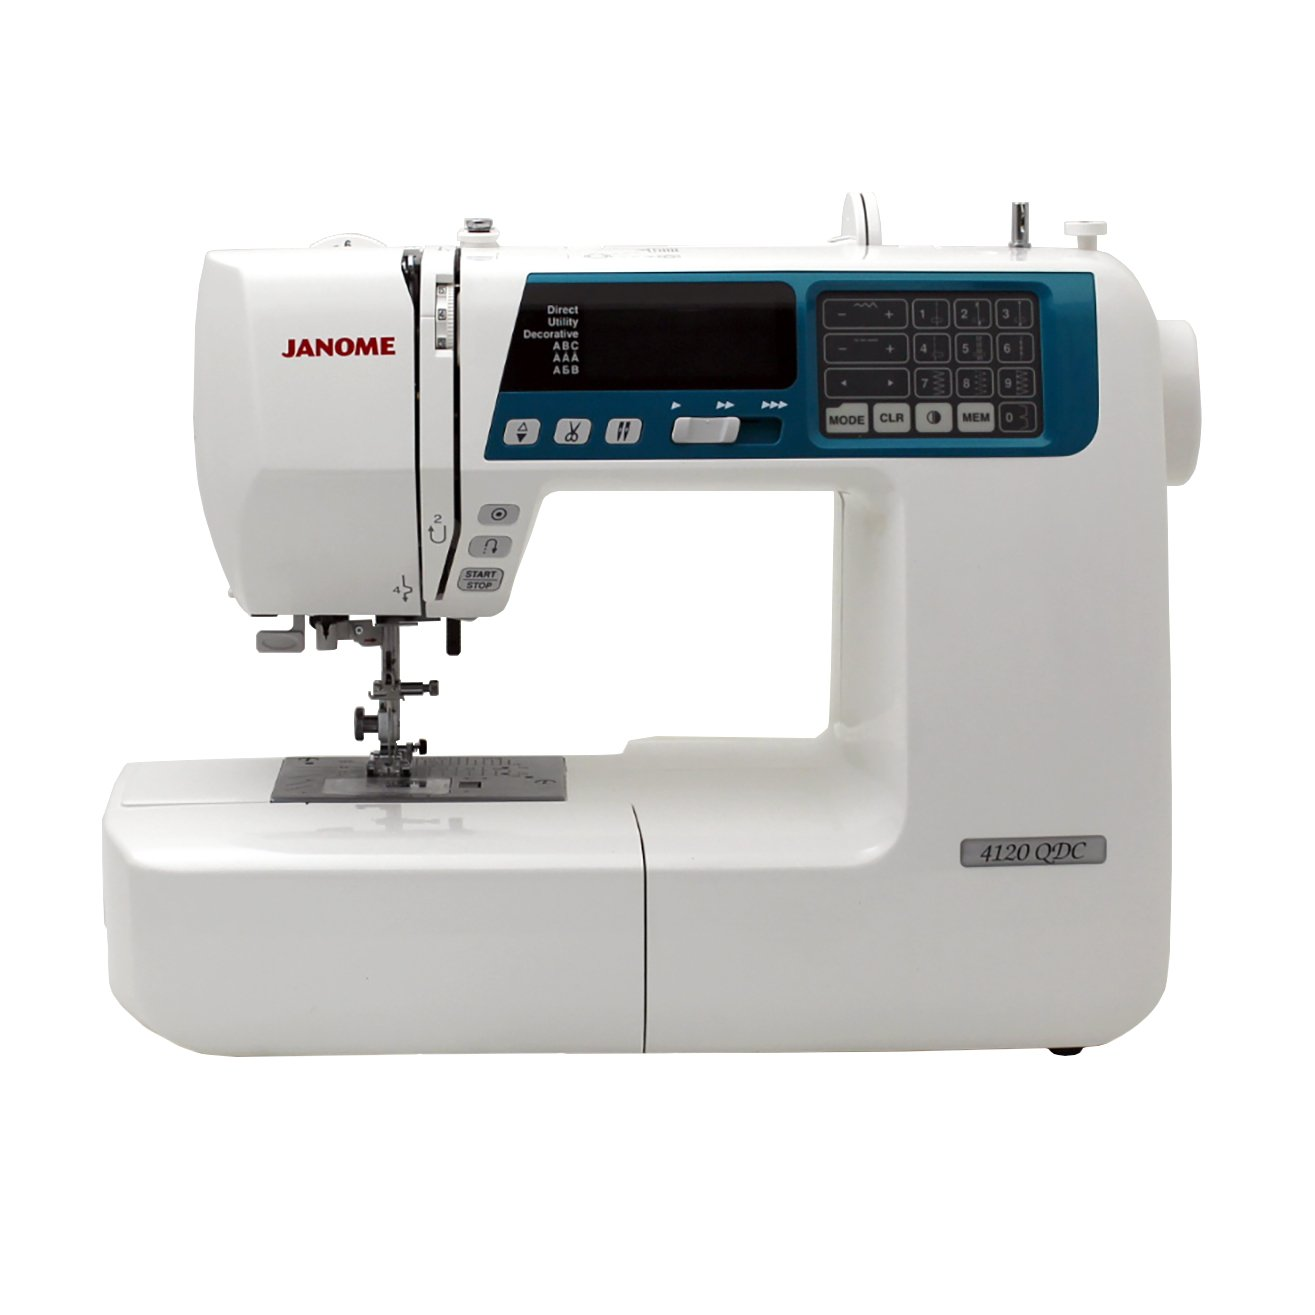 Janome 3160qdc Vs 4120qdc Cuttingr